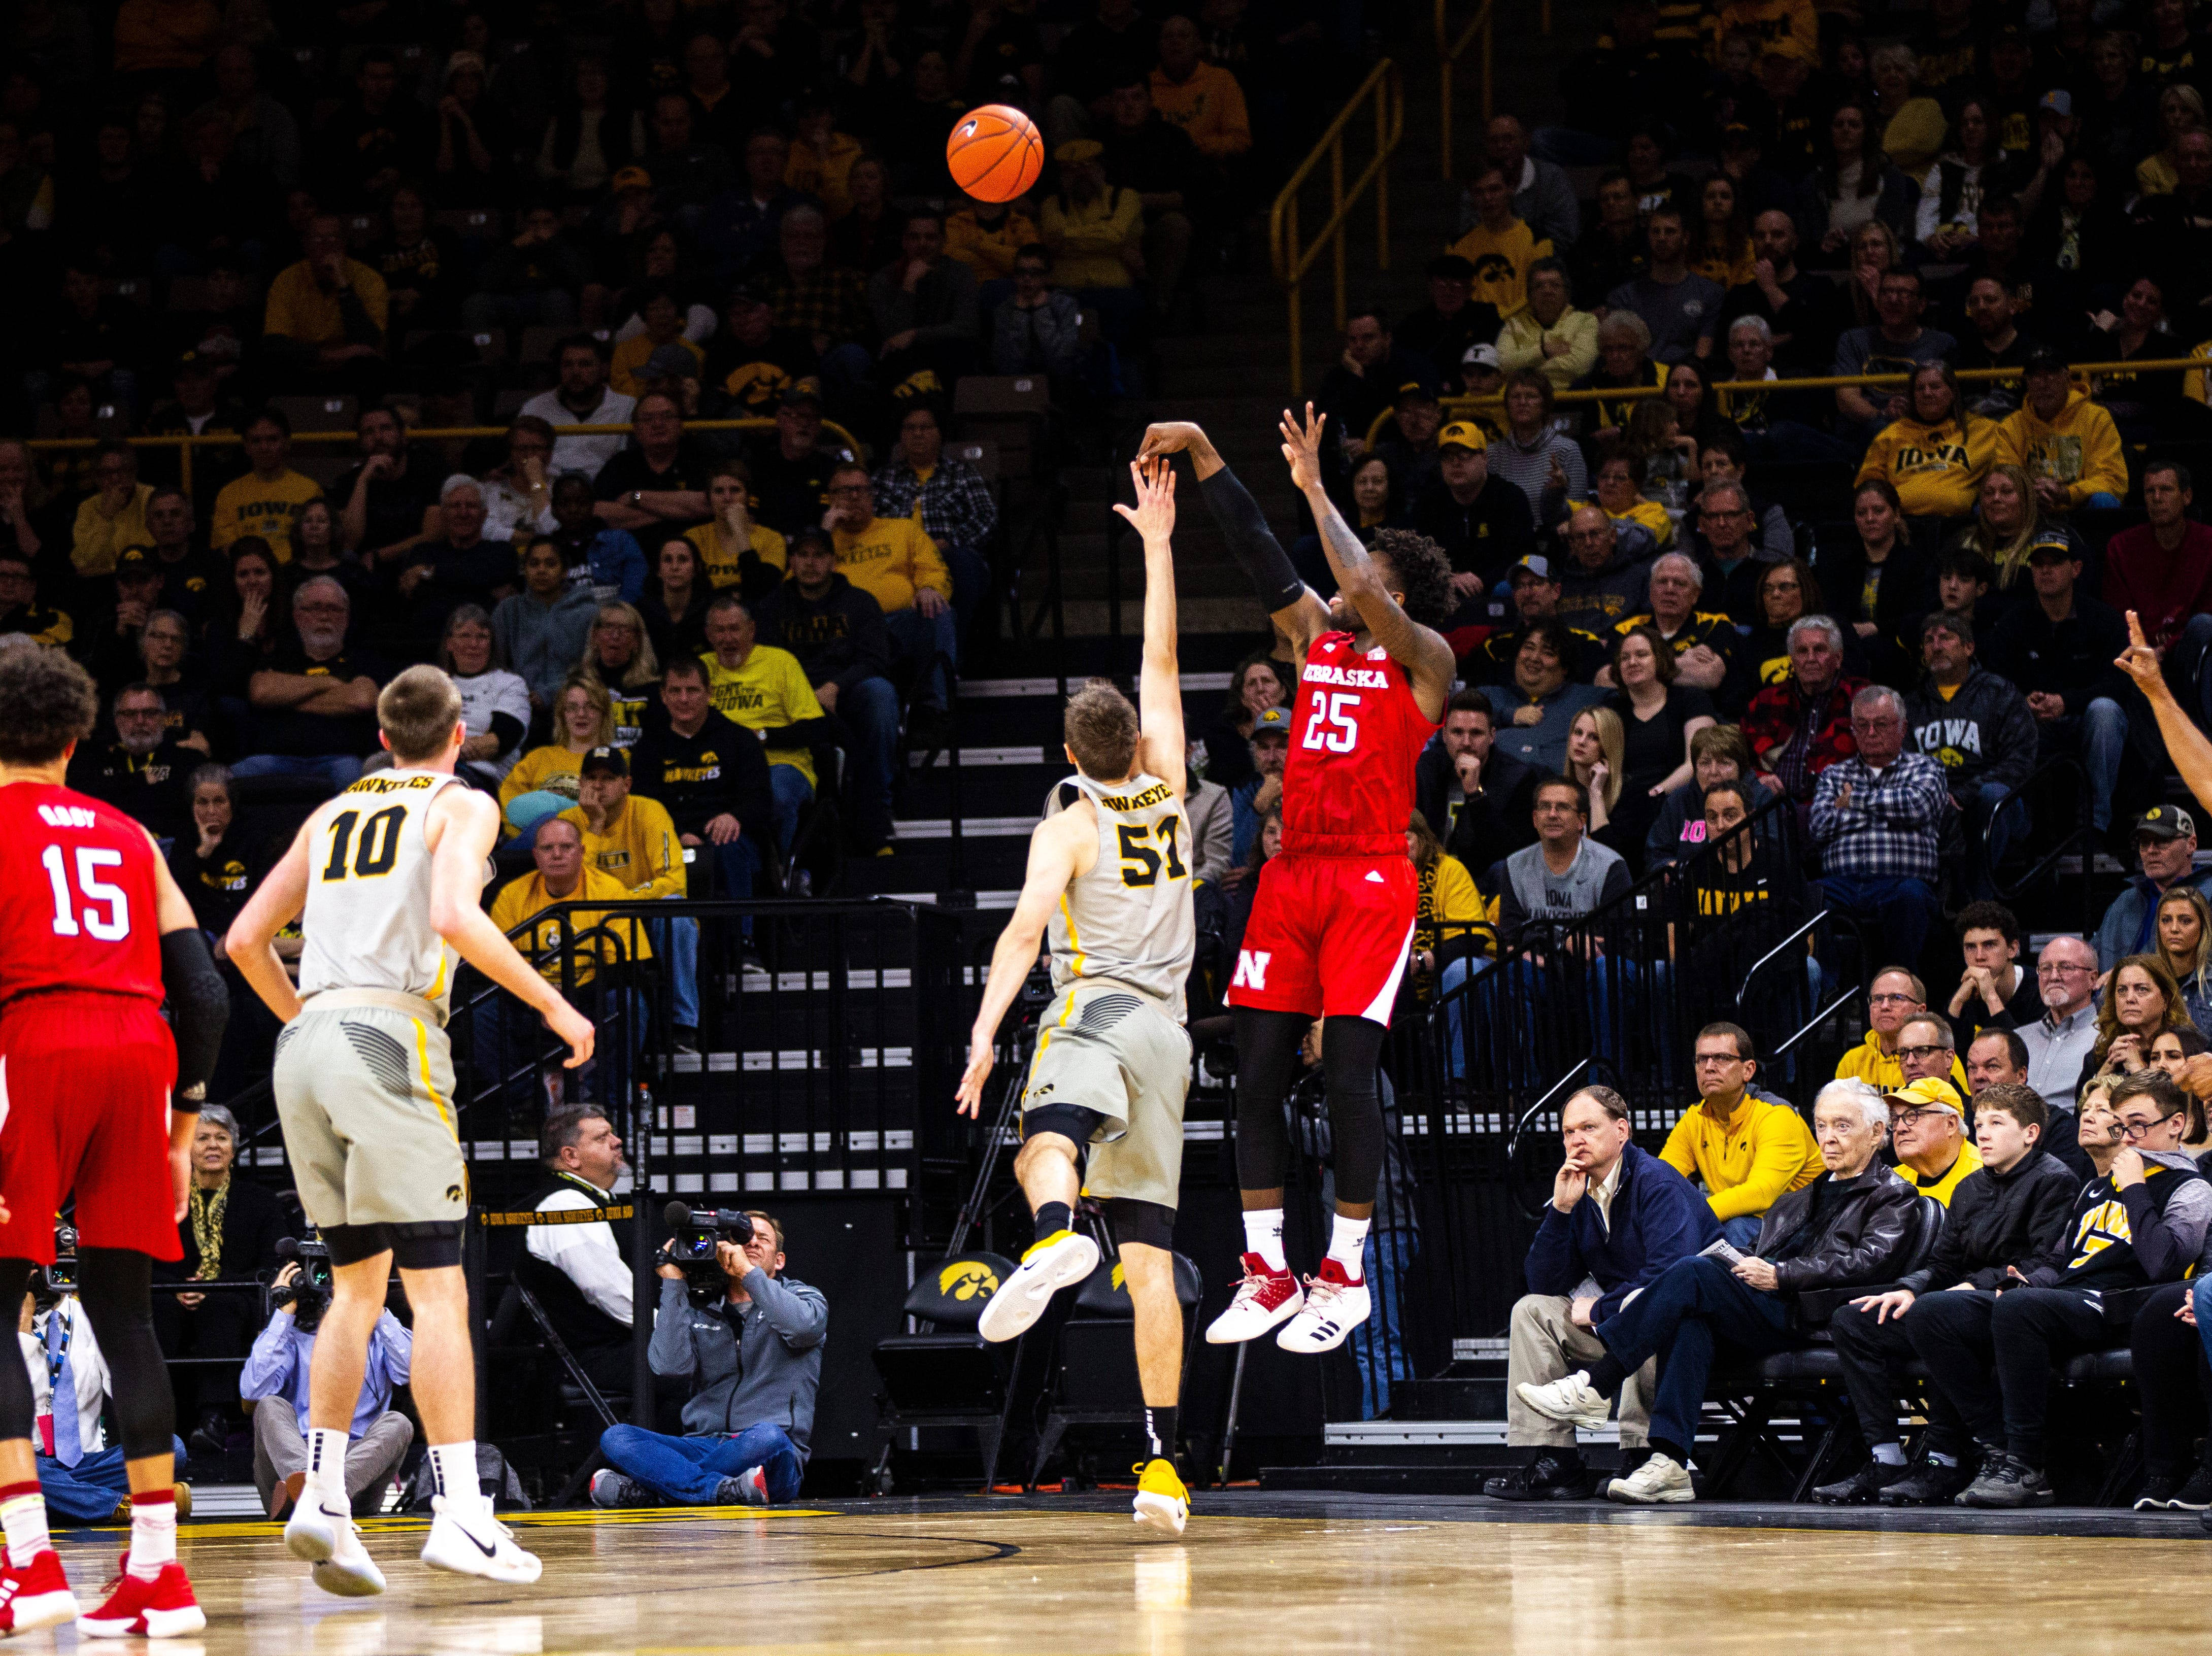 Iowa forward Nicholas Baer (51) gets called for a foul on Nebraska guard Nana Akenten (25) as he shoots a 3-point basket during a NCAA Big Ten Conference men's basketball game on Sunday, Jan. 6, 2019, at the Carver-Hawkeye Arena in Iowa City, Iowa.